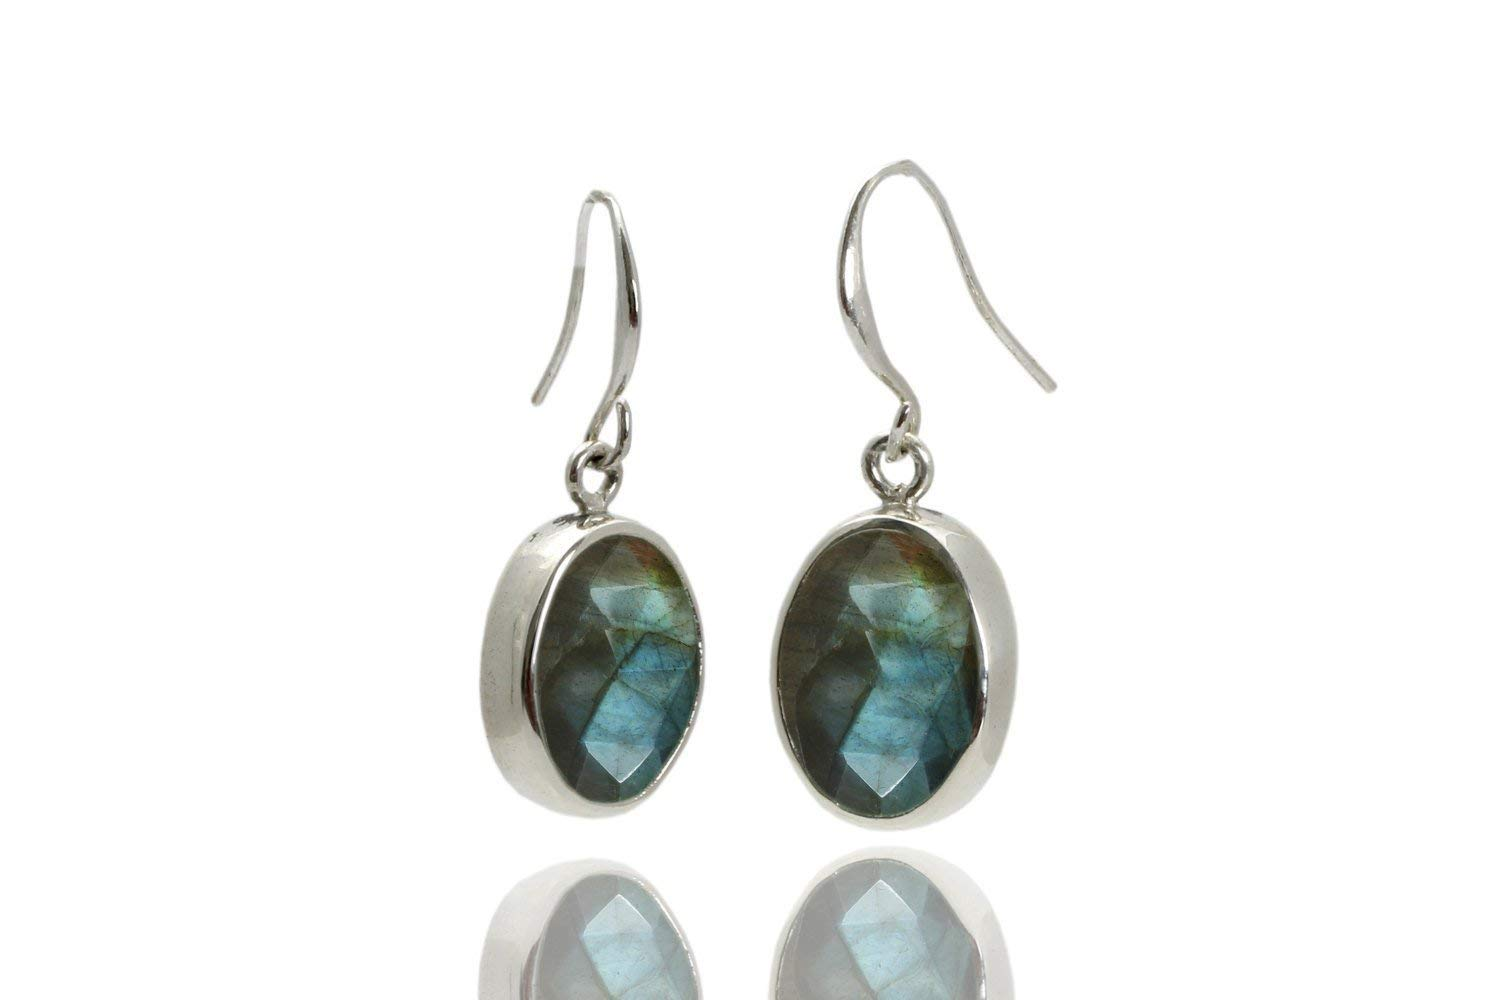 Tempting 100/% Natural Labradorite Oval Shape Ethnic Style Handmade Jewelry 925 Sterling Silver Dangle Earrings 4.6 gms 13X6 mm 1.7 BL-158